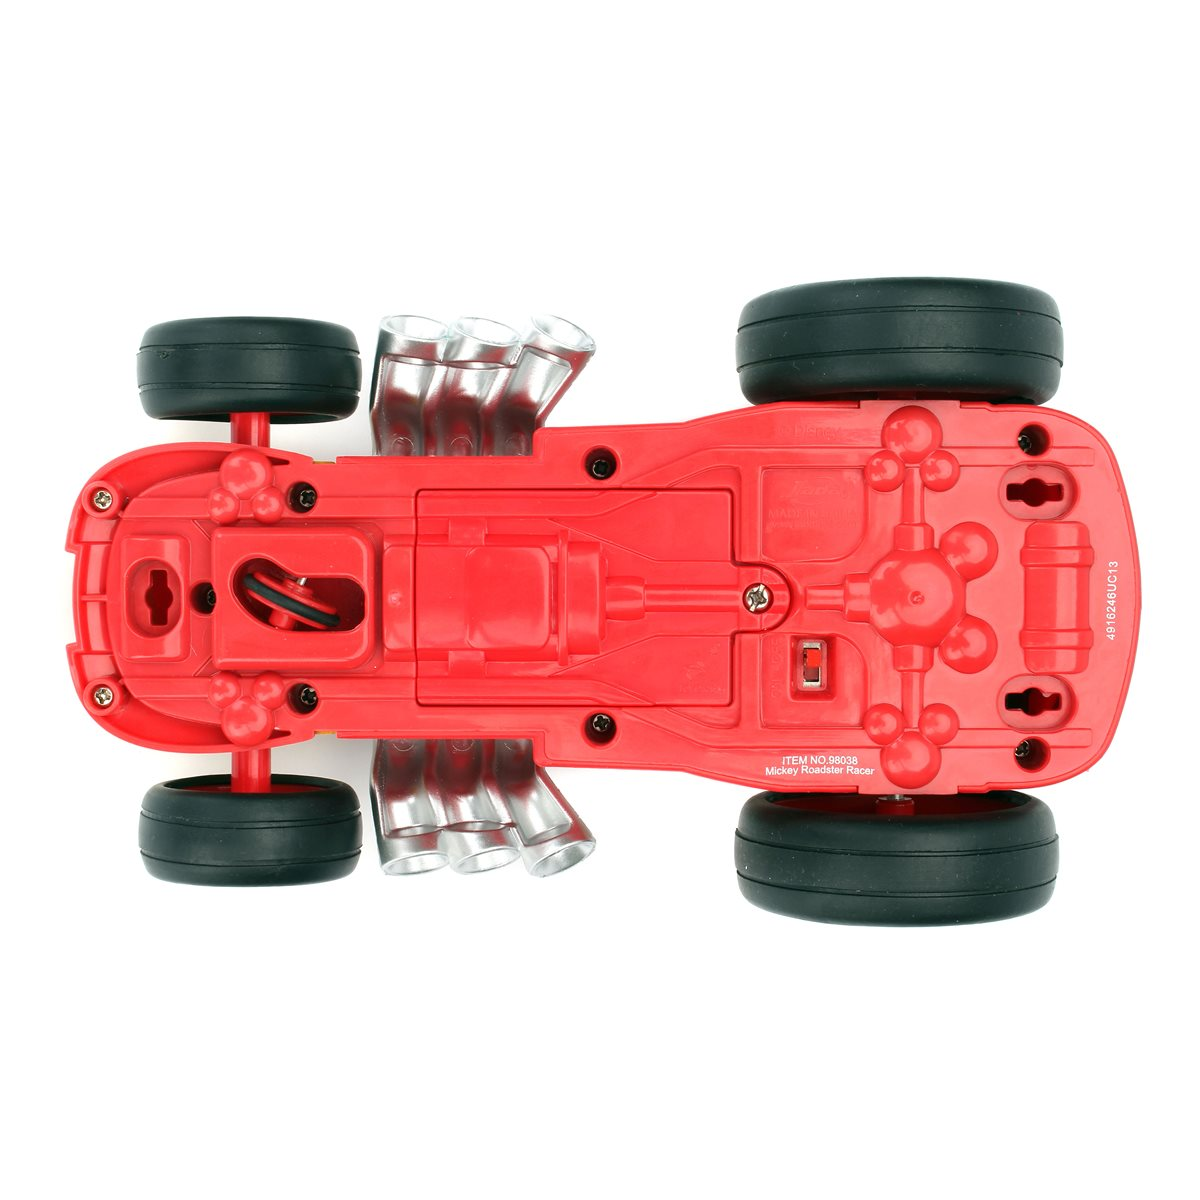 Disney Mickey Mouse Roadster Racer Rc Vehicle